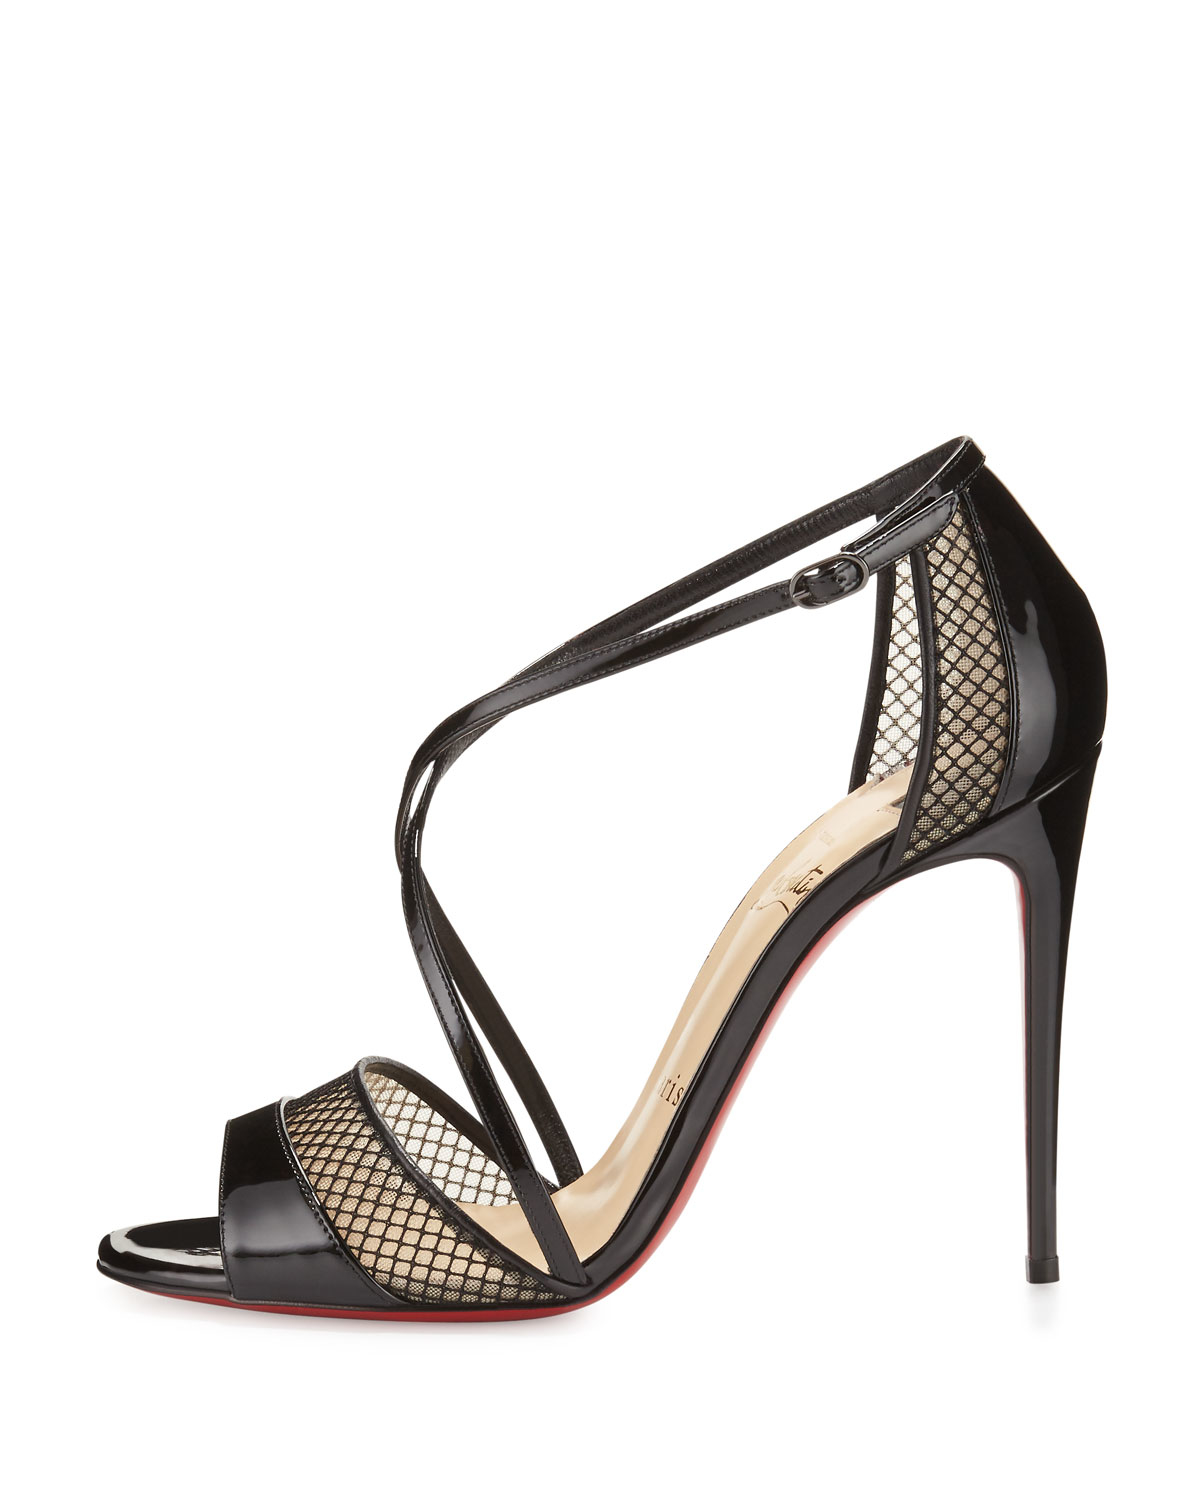 detailed look 2a062 54919 Christian Louboutin Black Slikova Patent and Mesh Sandals